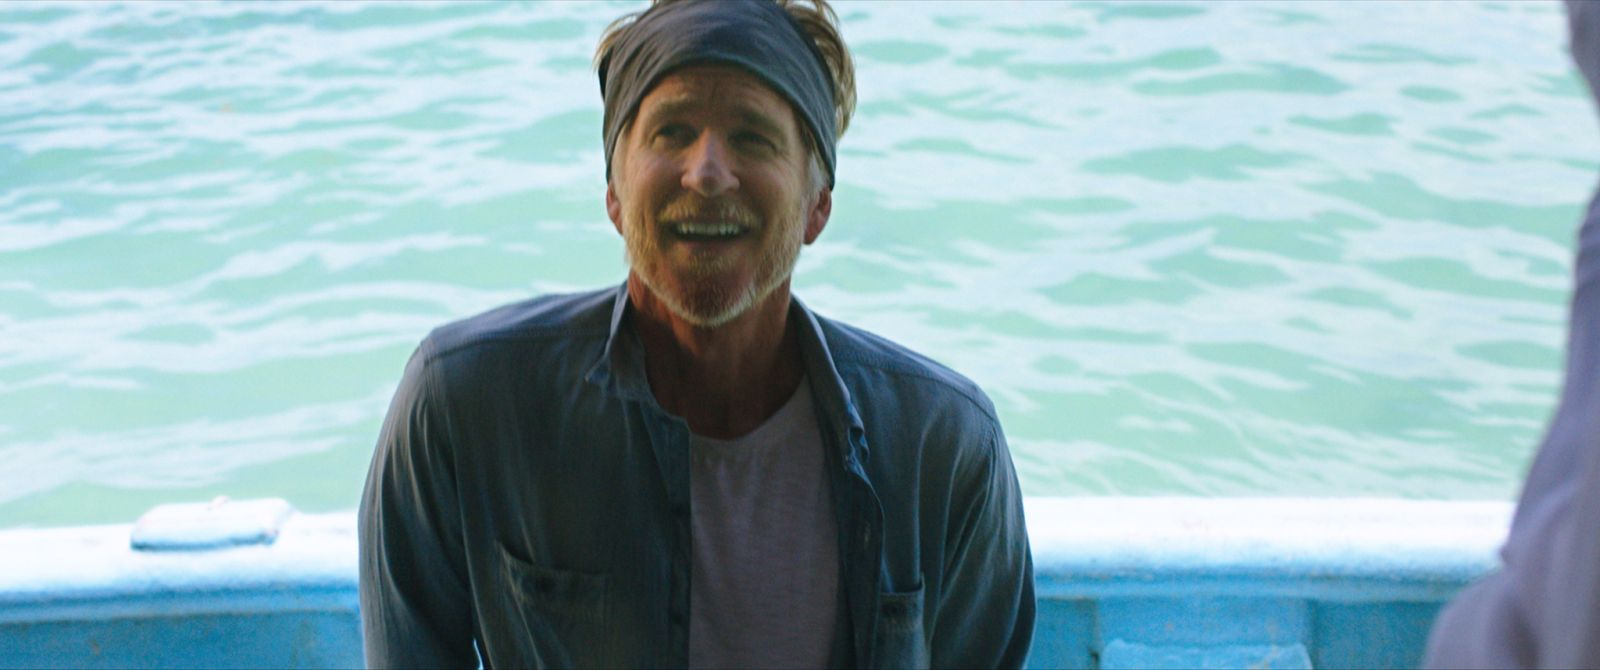 47 metri: Matthew Modine in un momento del film